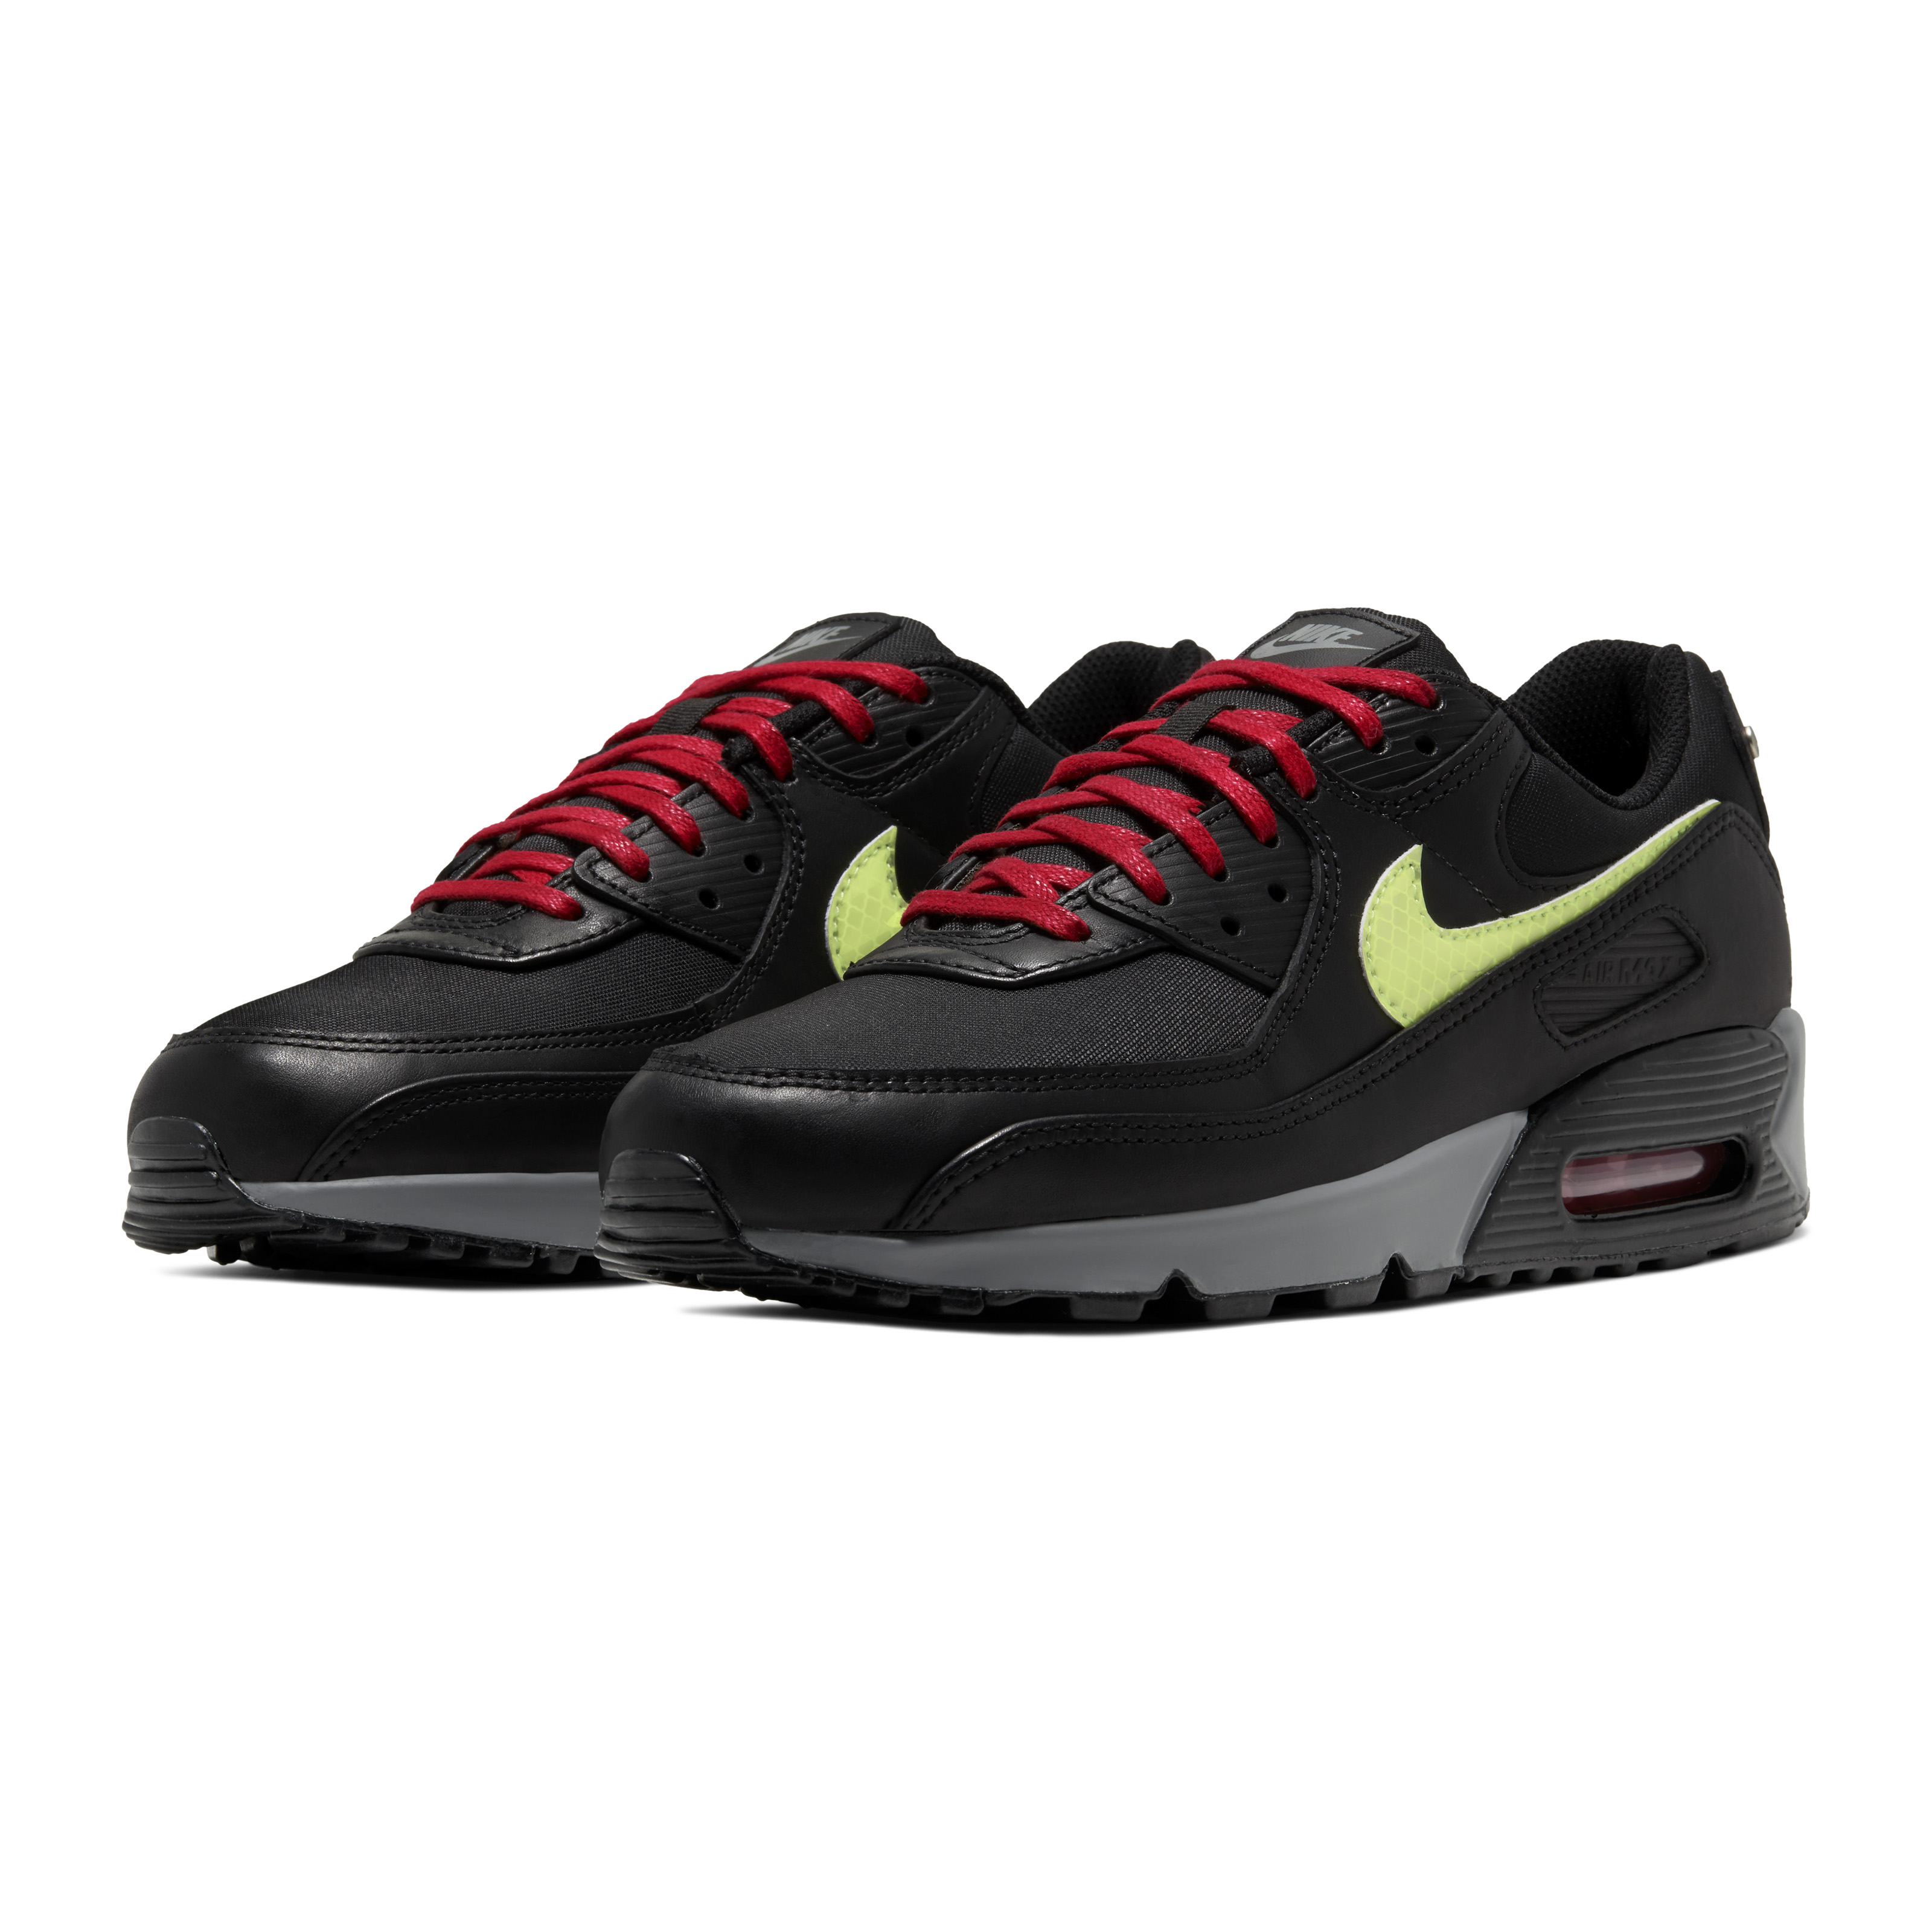 Disfrazado posponer 945  🥇NIKE AIR MAX 90CITY PACK [London, Paris..] ++ TOP TOP++  zapatillasysneakers.com